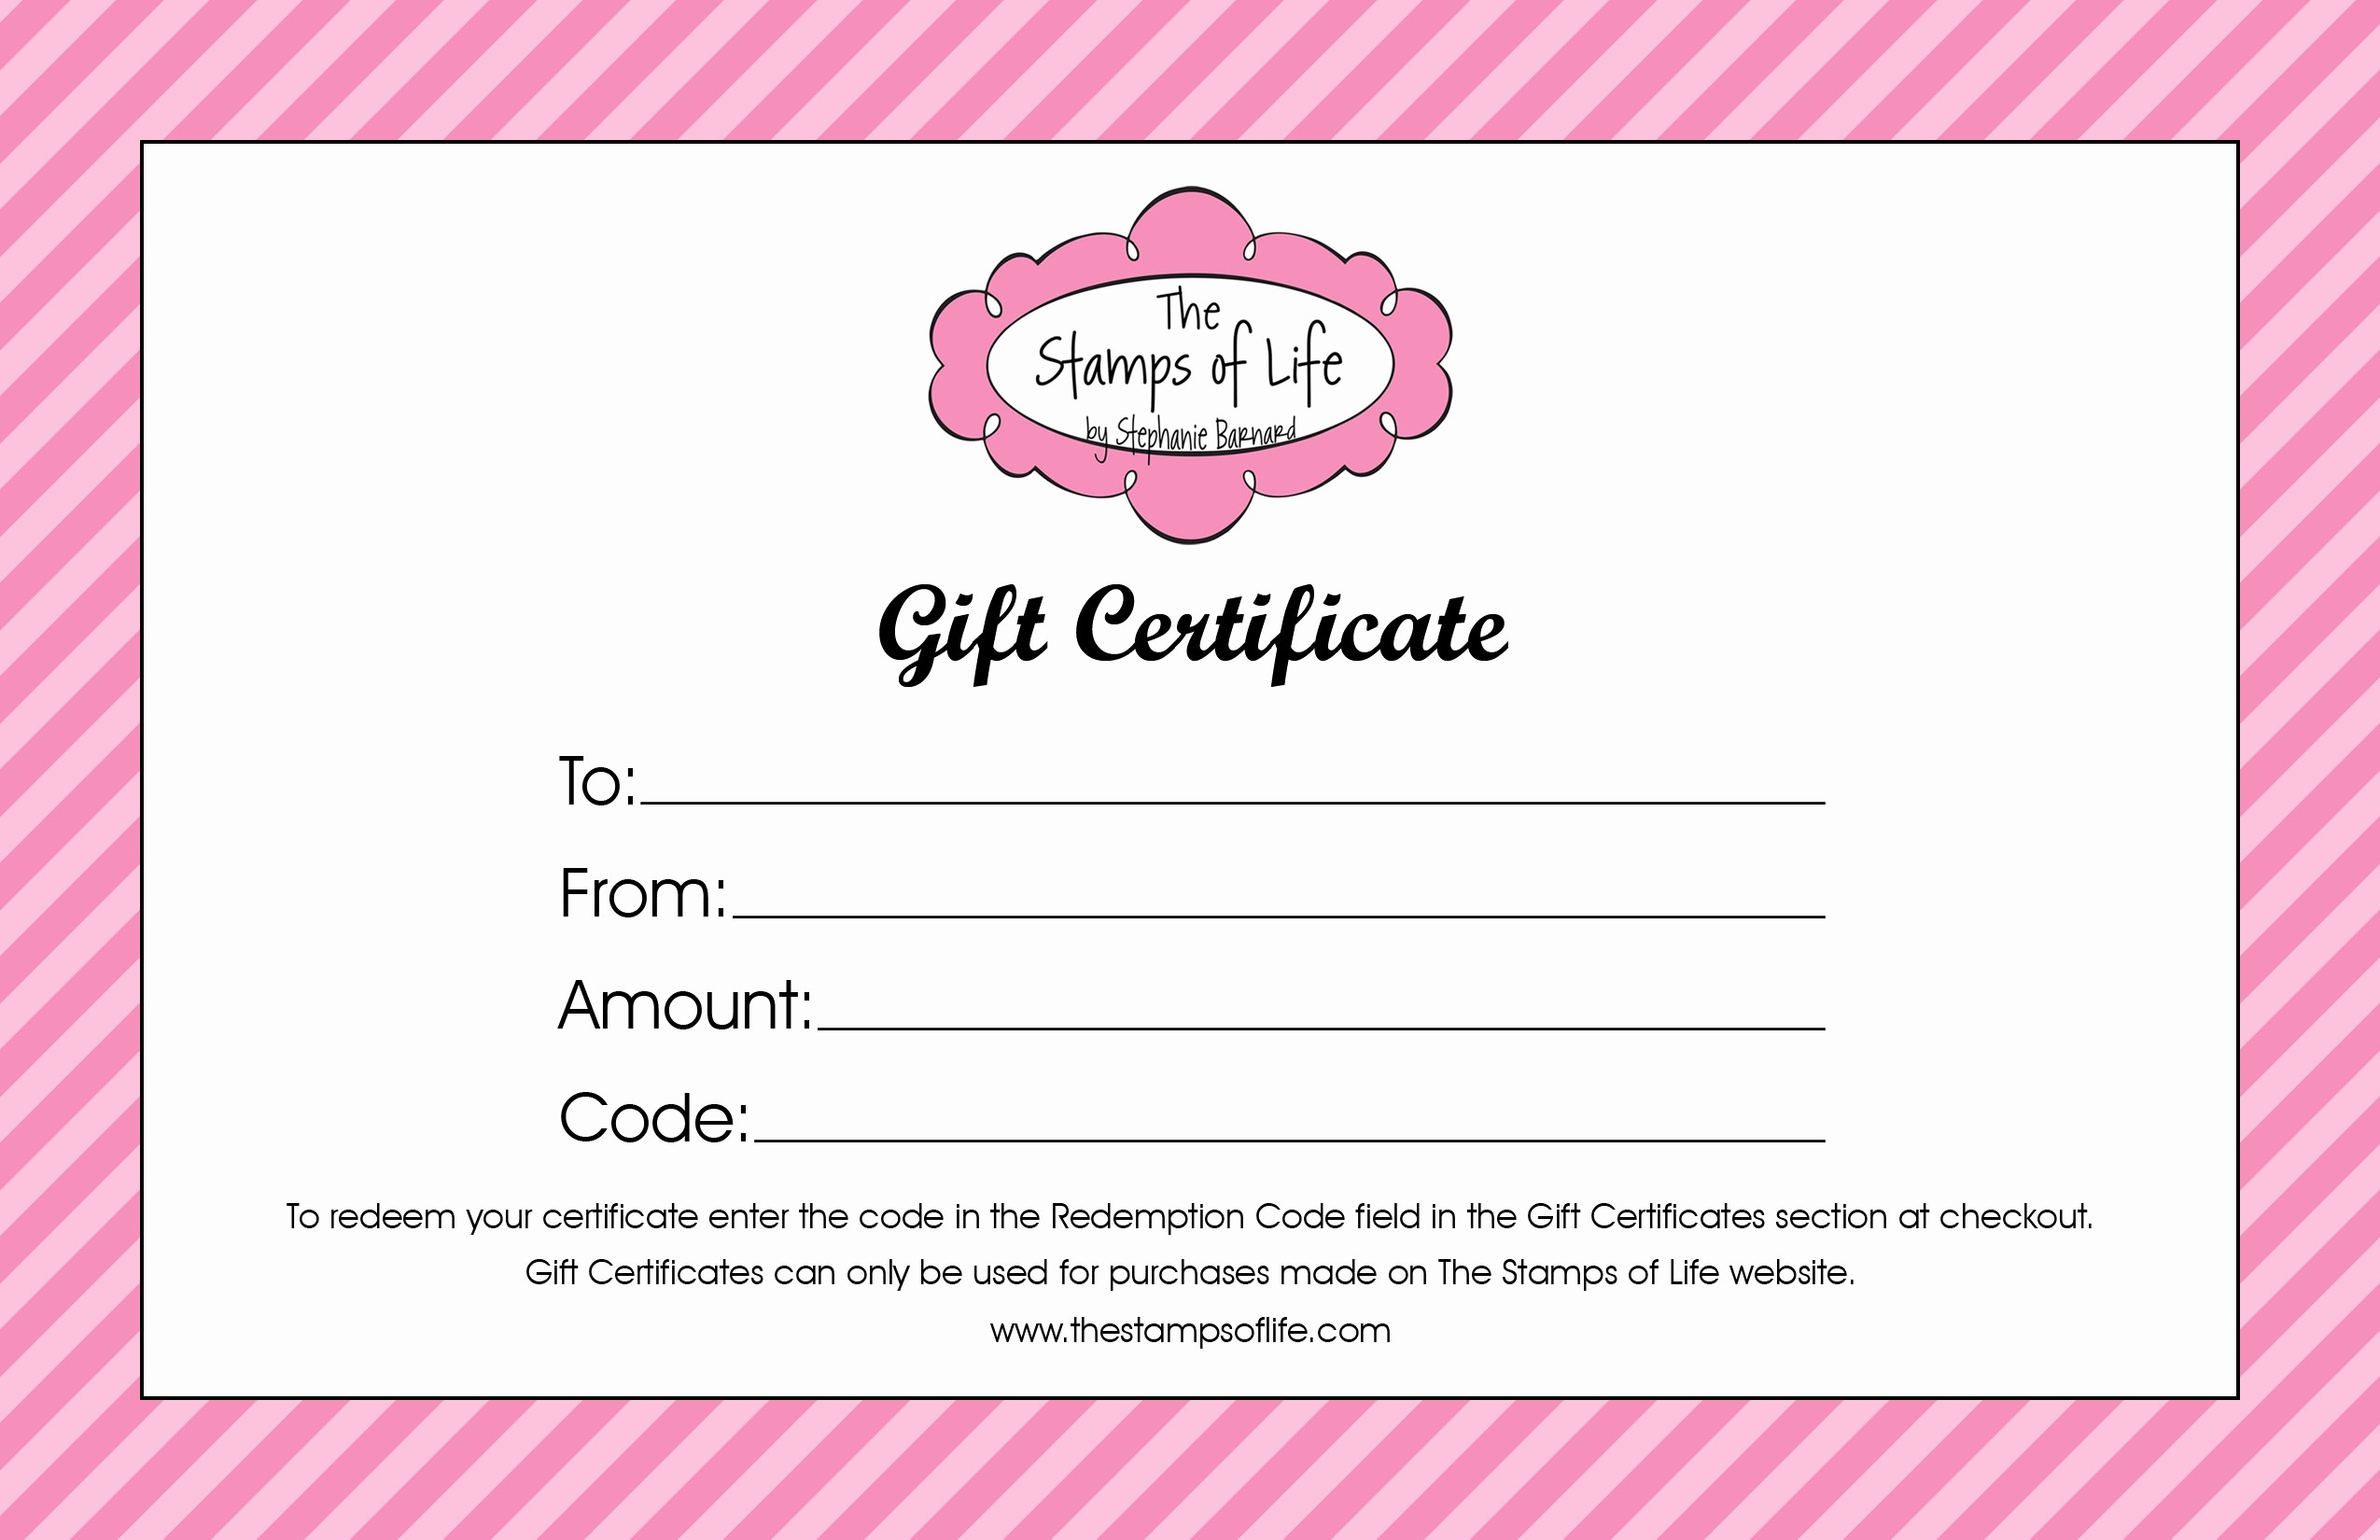 Homemade Gift Certificate Templates Free Lovely 21 Free Free Gift Certificate Templates Word Excel formats